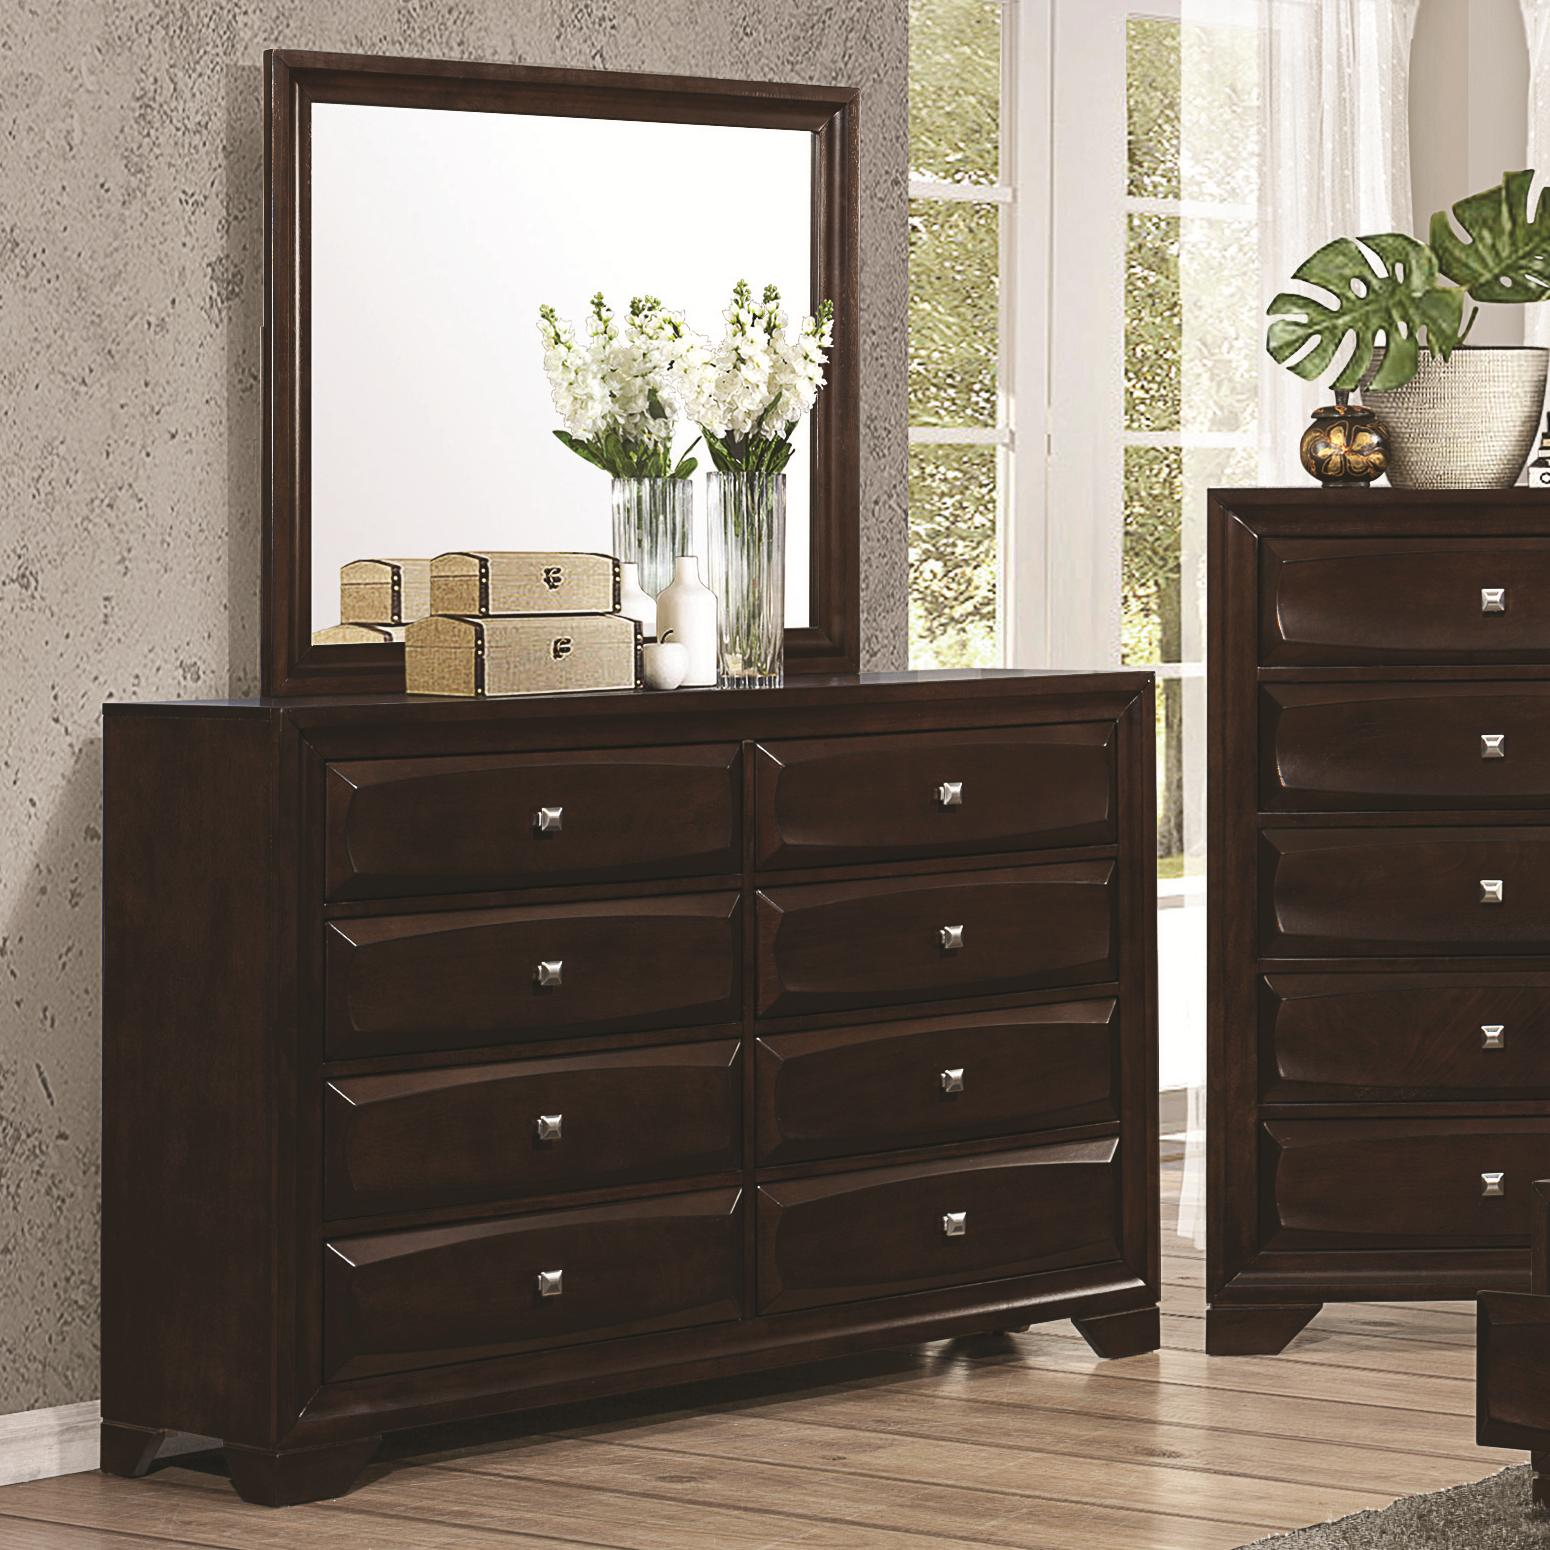 Jaxson Dresser and Mirror Combo by Coaster at Lapeer Furniture & Mattress Center